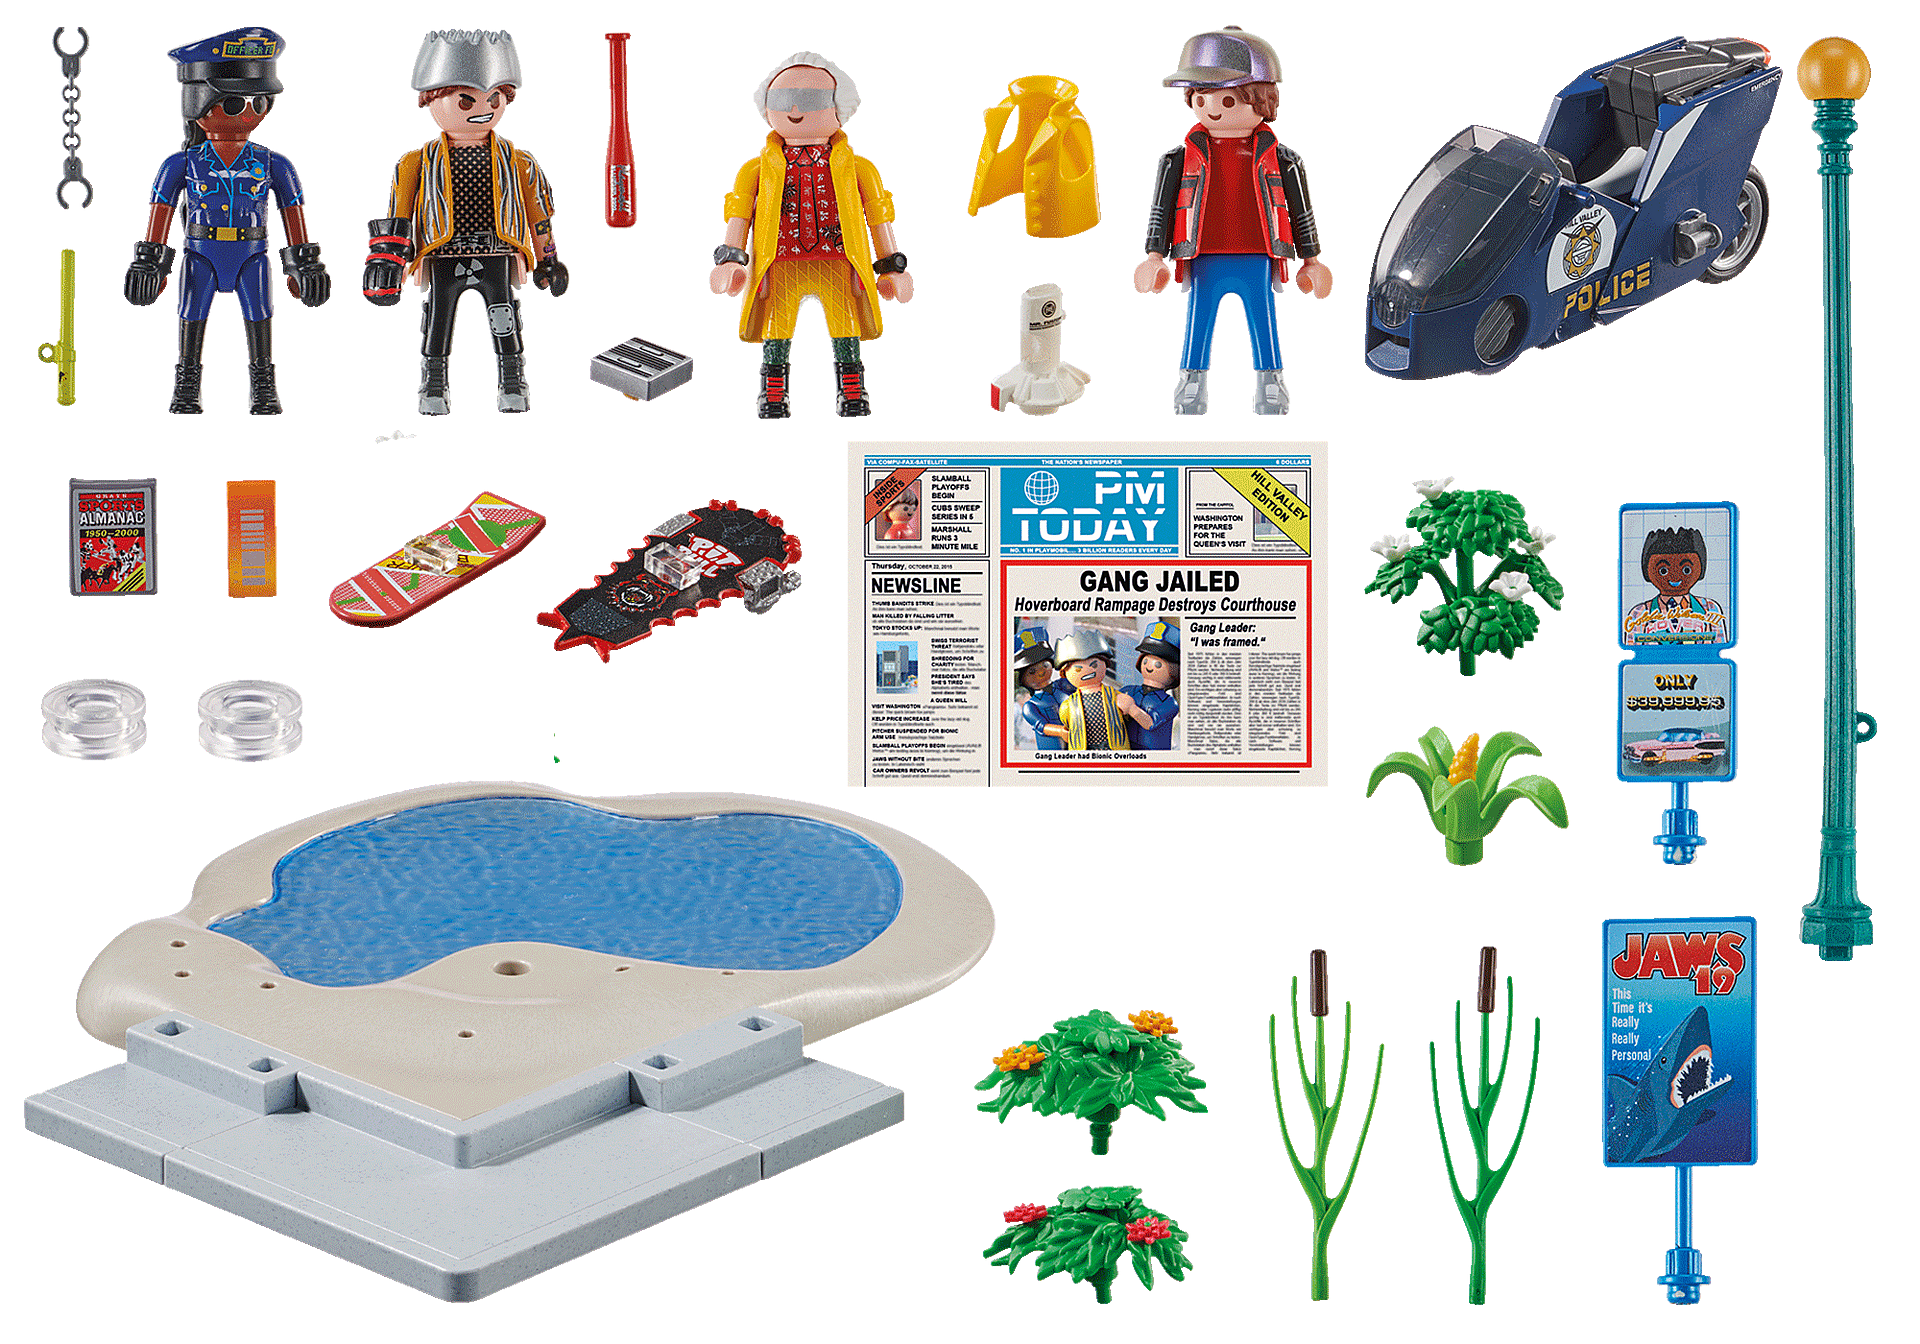 70634 Back to the Future Part II Hoverboard Chase zoom image3